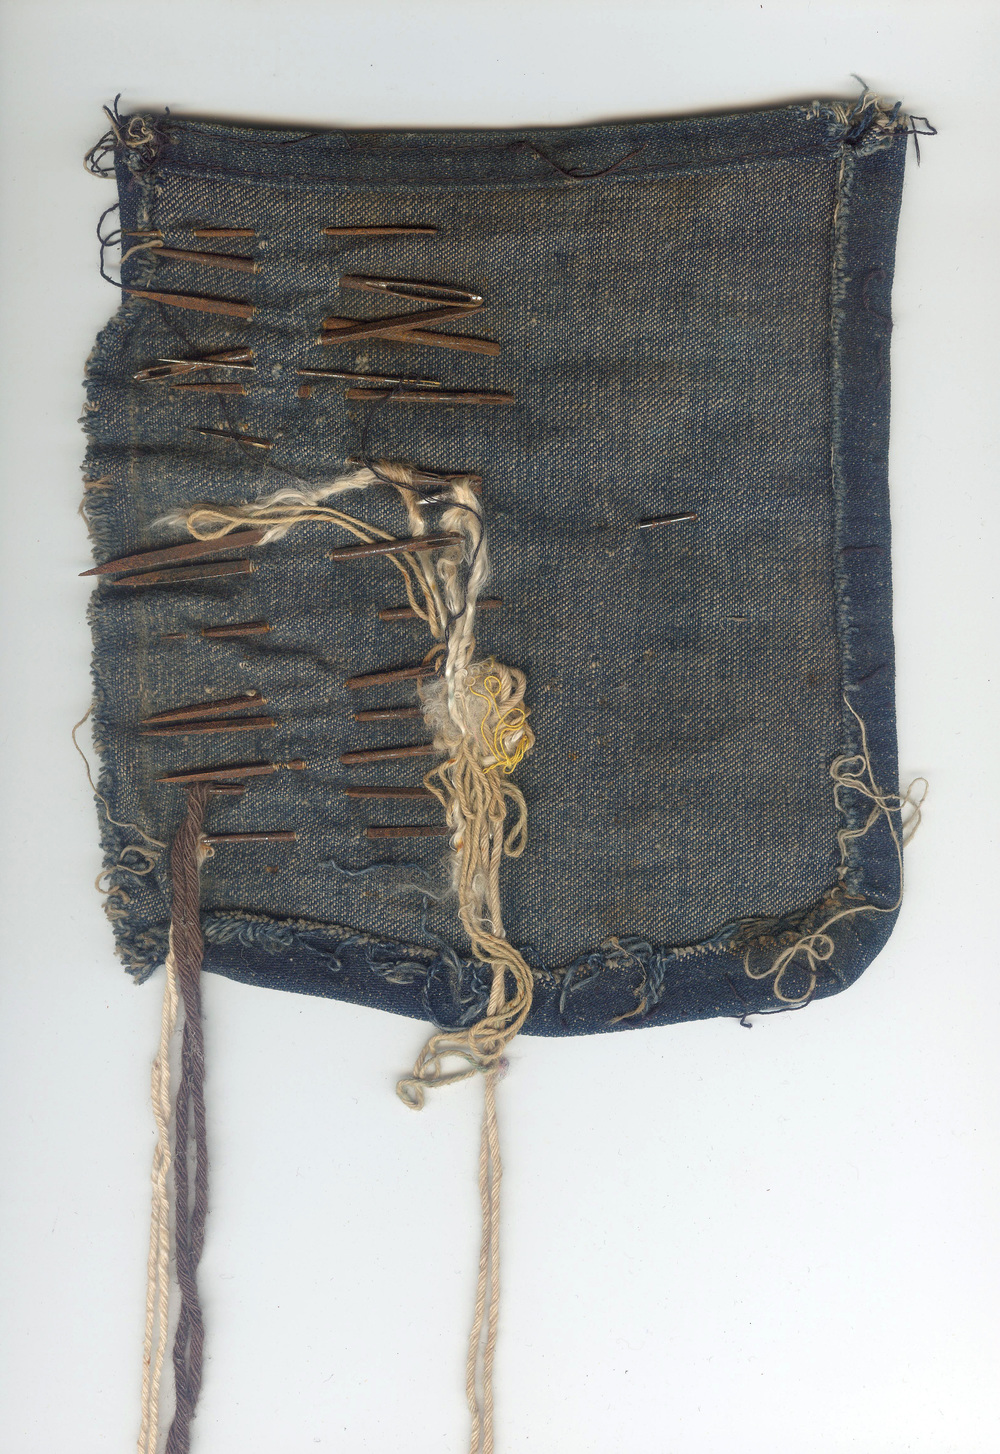 burthening - denim, string, needles